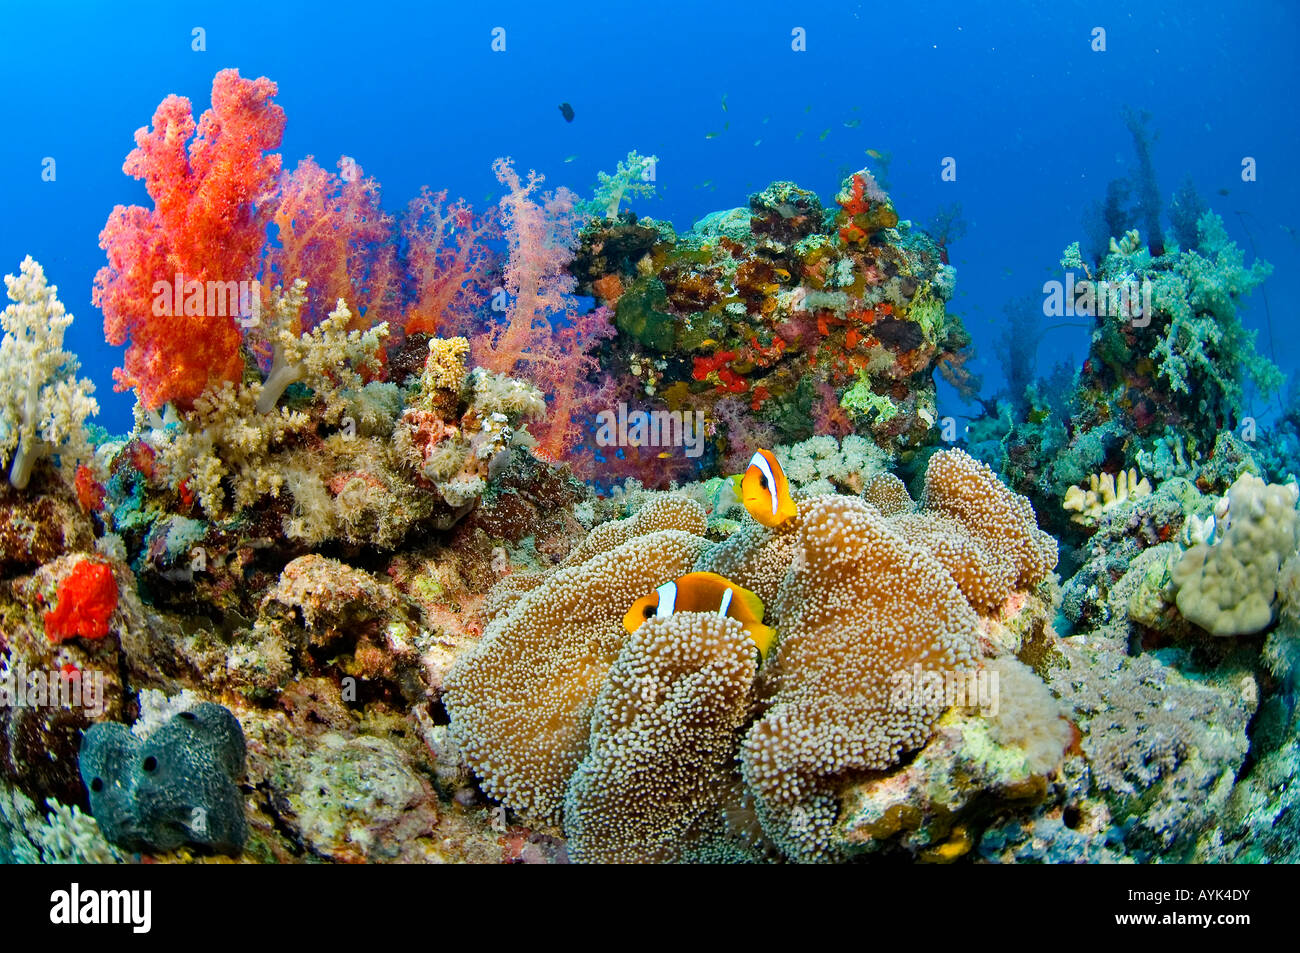 Red Sea coral patch - Stock Image